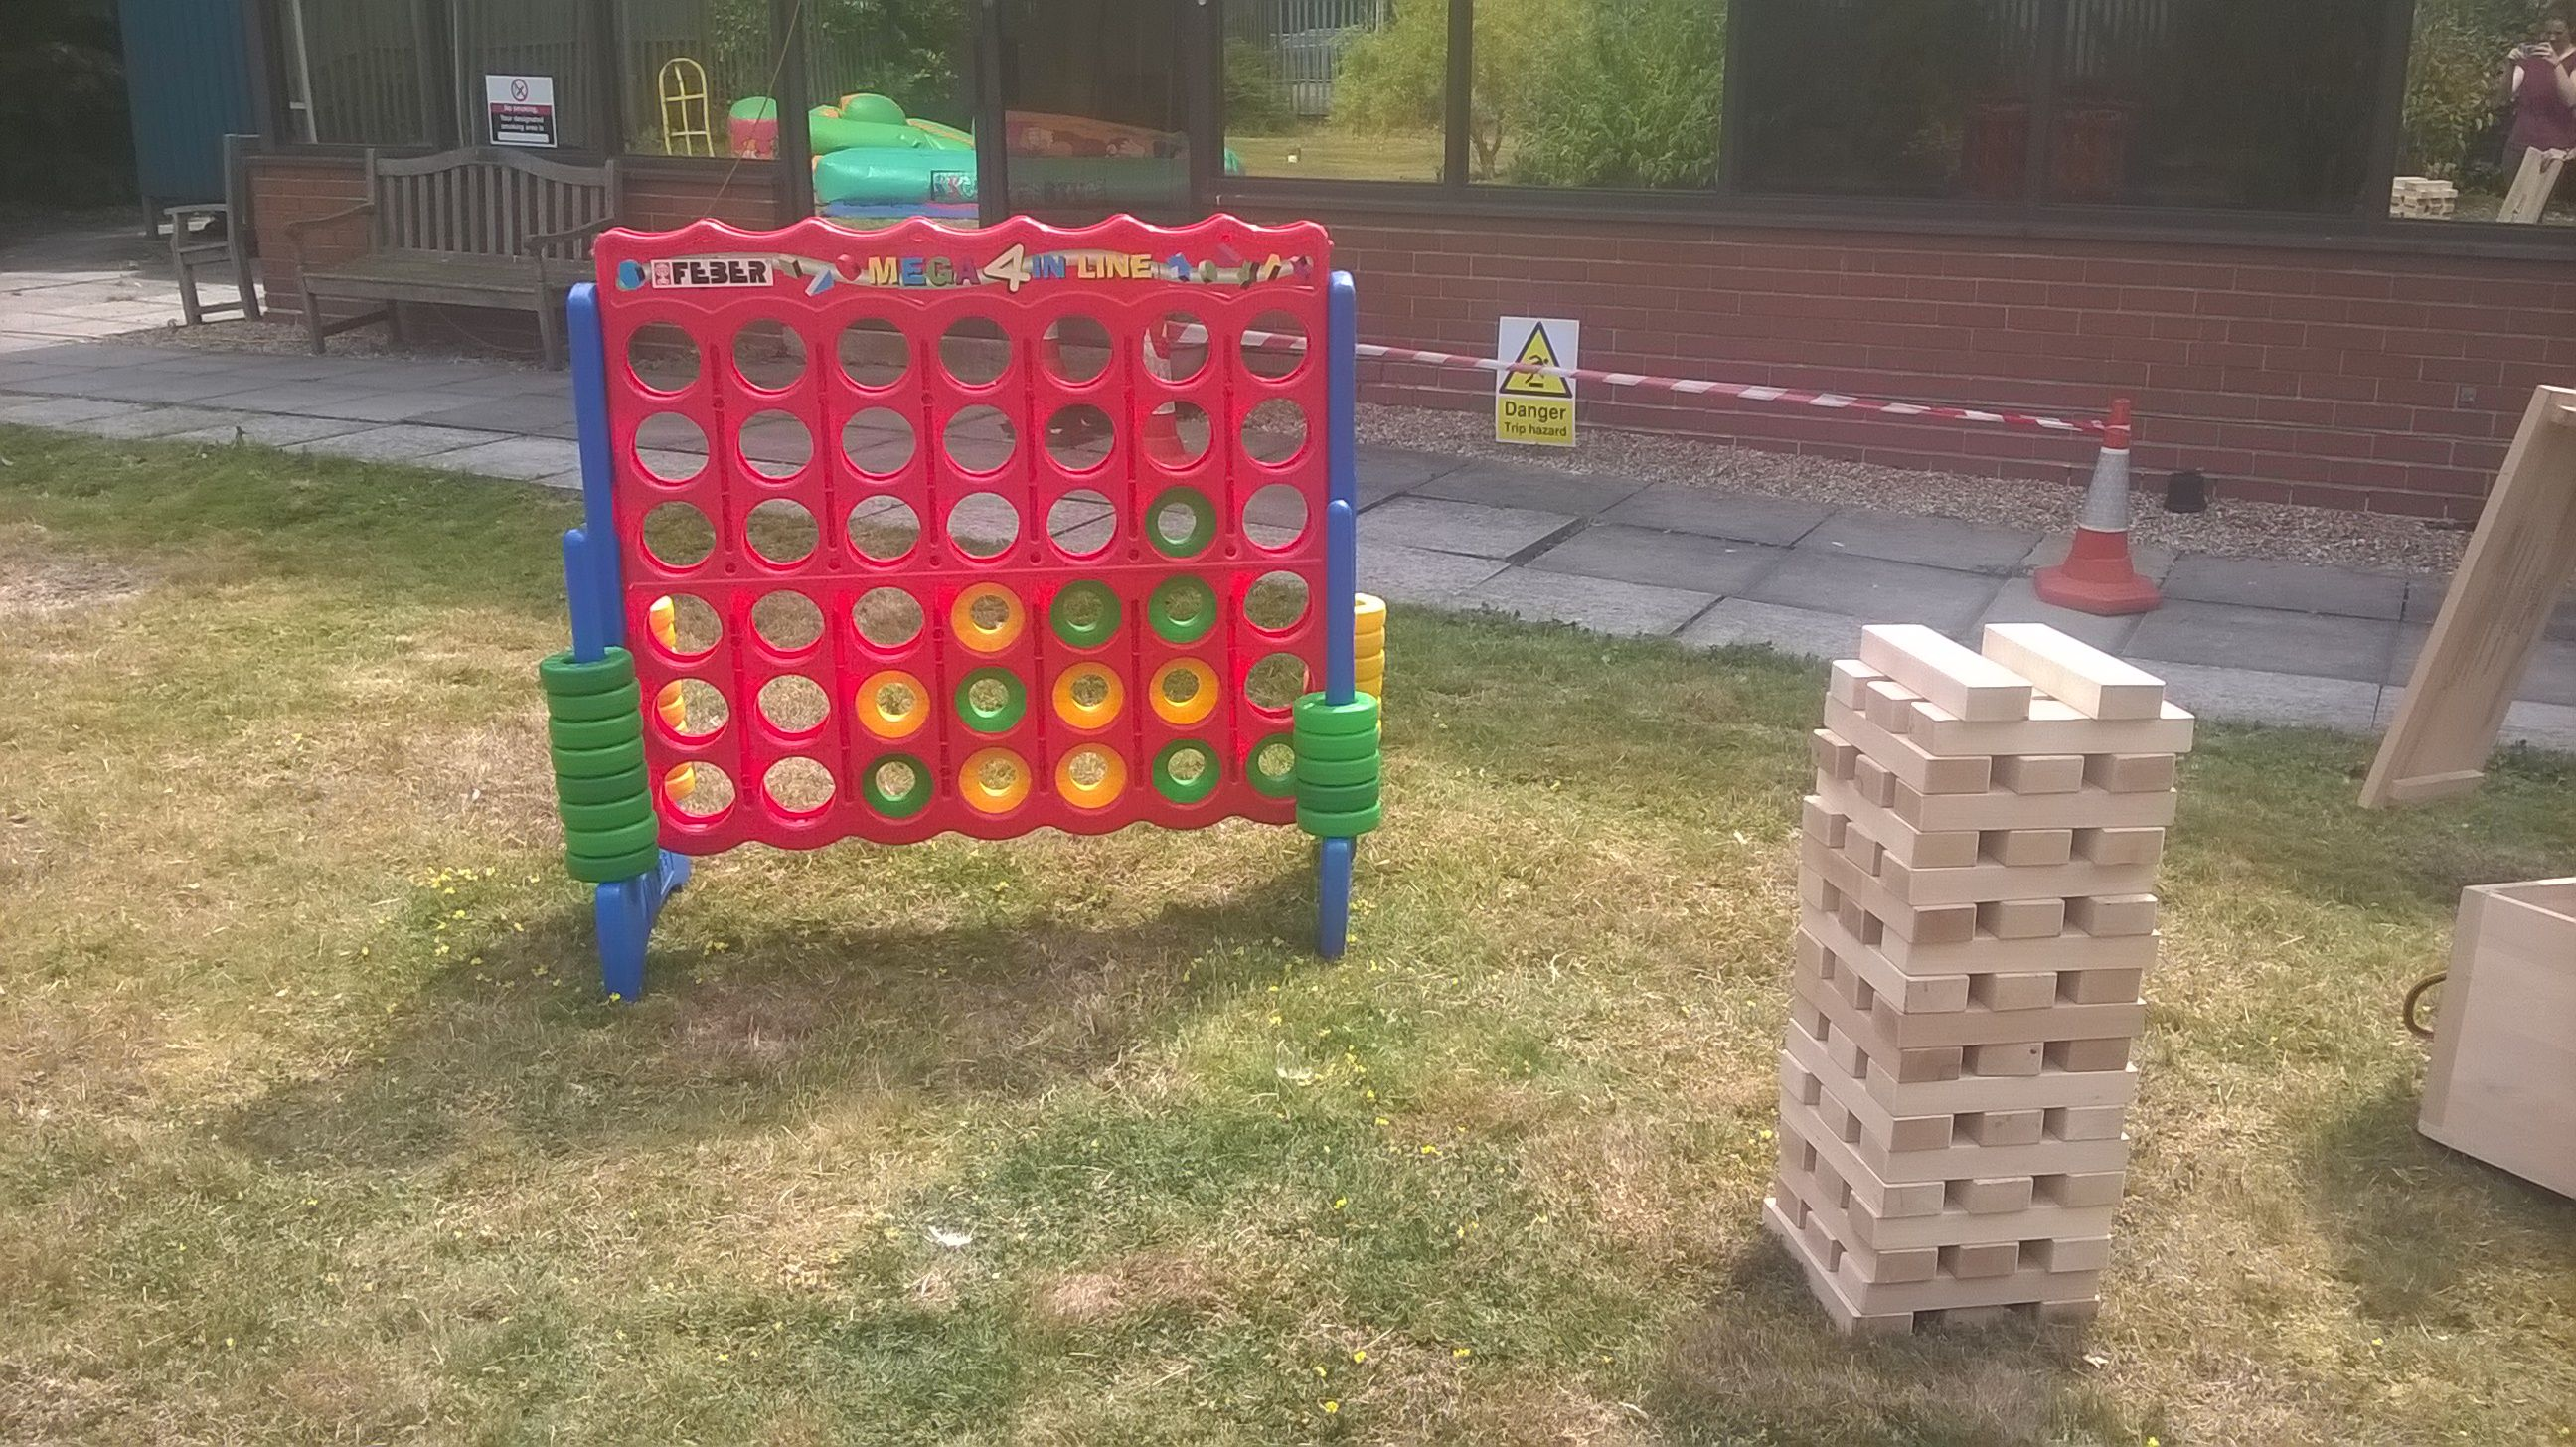 Giant Jenga And Giant Mega 4 Connect 4 Hire Charge 20 Each Or Only 10 Each When Booked With A Bouncy Castle Giant Garden Games Giant Jenga Bouncy Castle